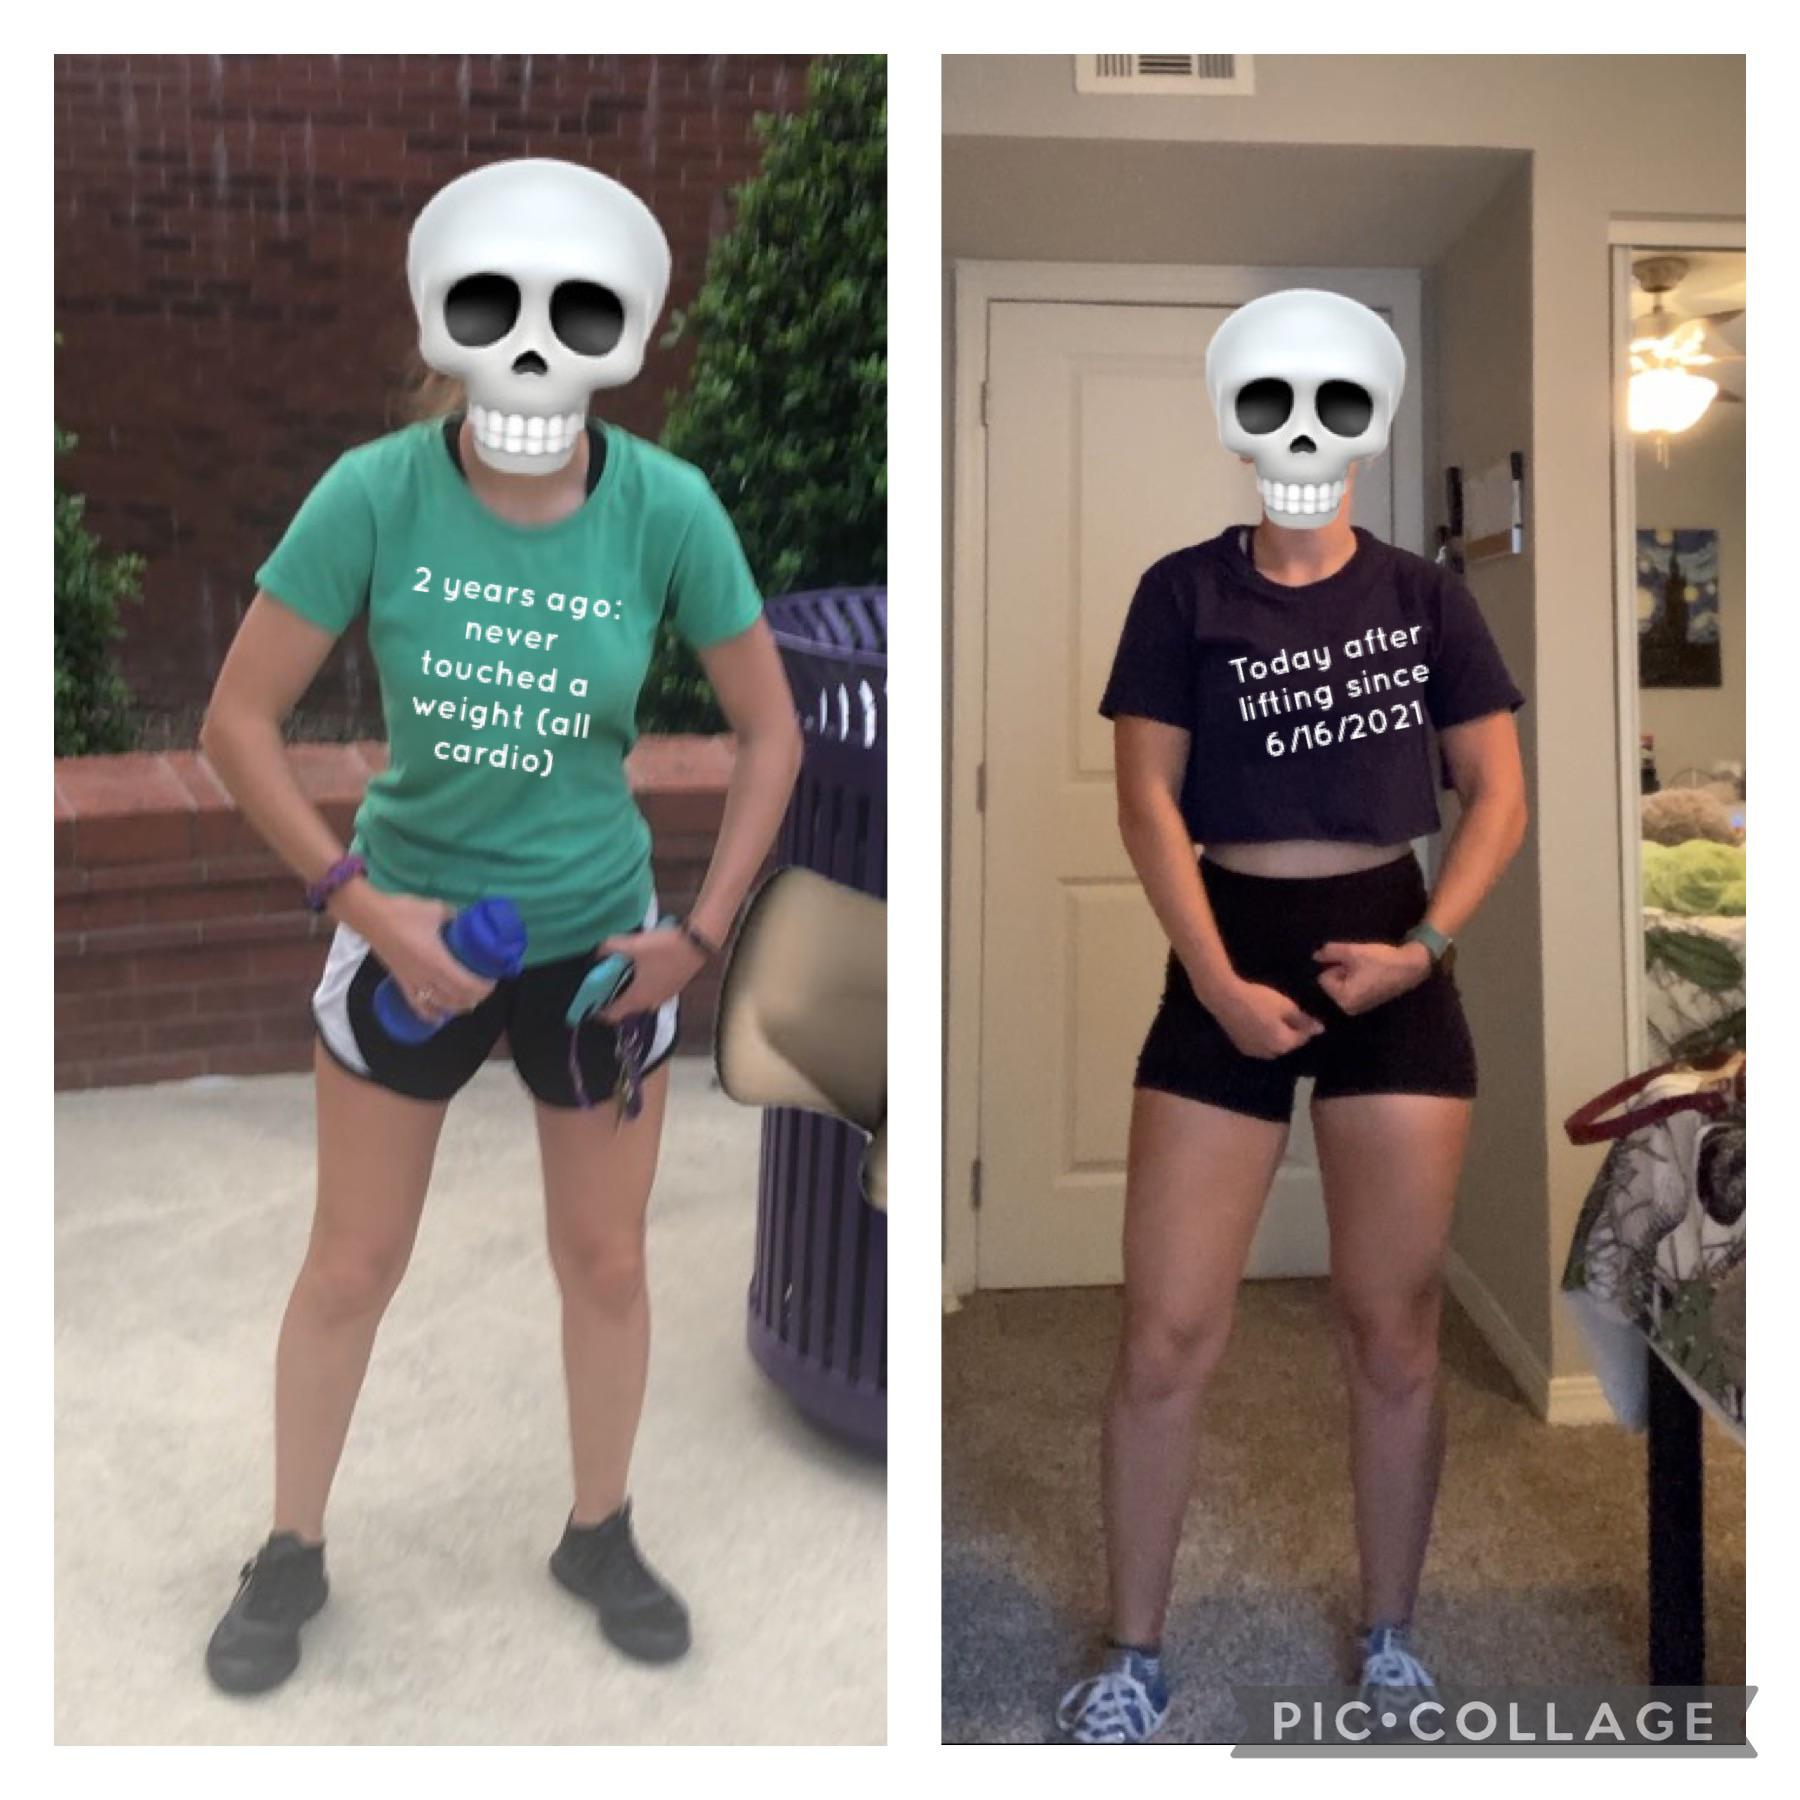 5 feet 3 Female Before and After 15 lbs Weight Loss 125 lbs to 110 lbs